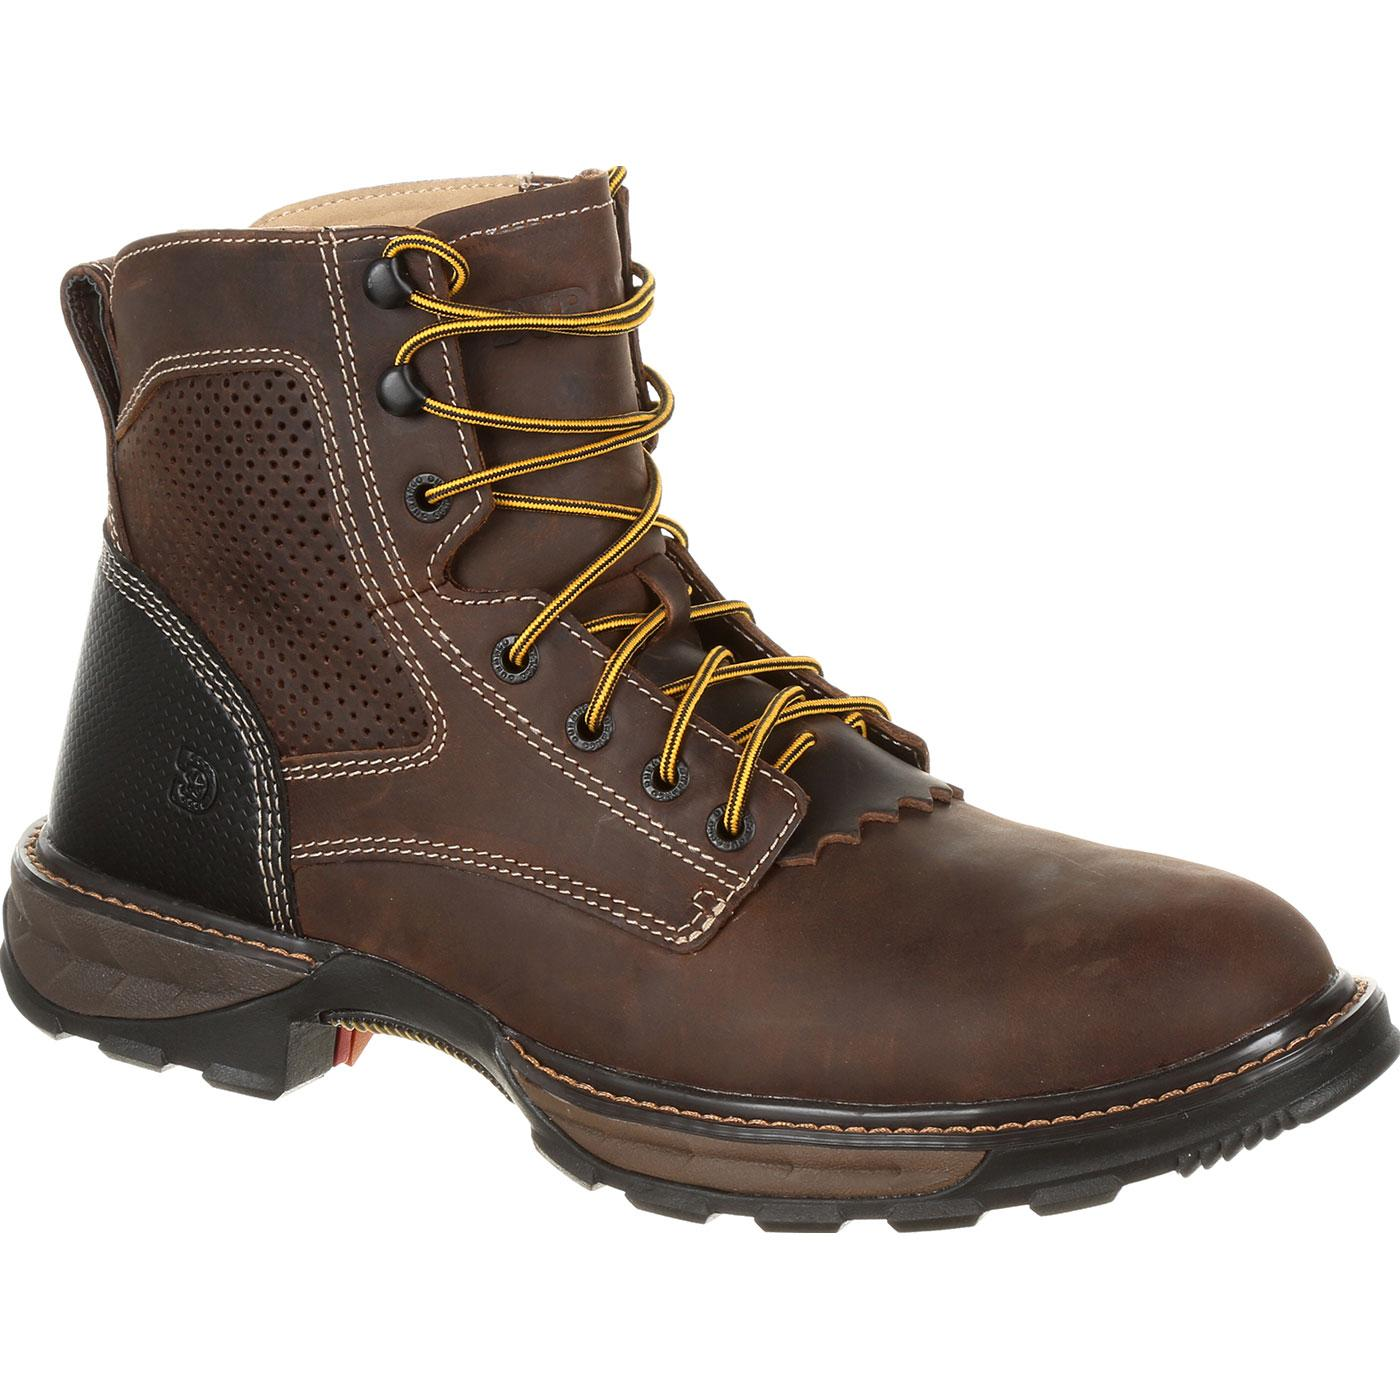 fcb286766f0 Durango Maverick XP Steel Toe Ventilated Lacer Work Boot